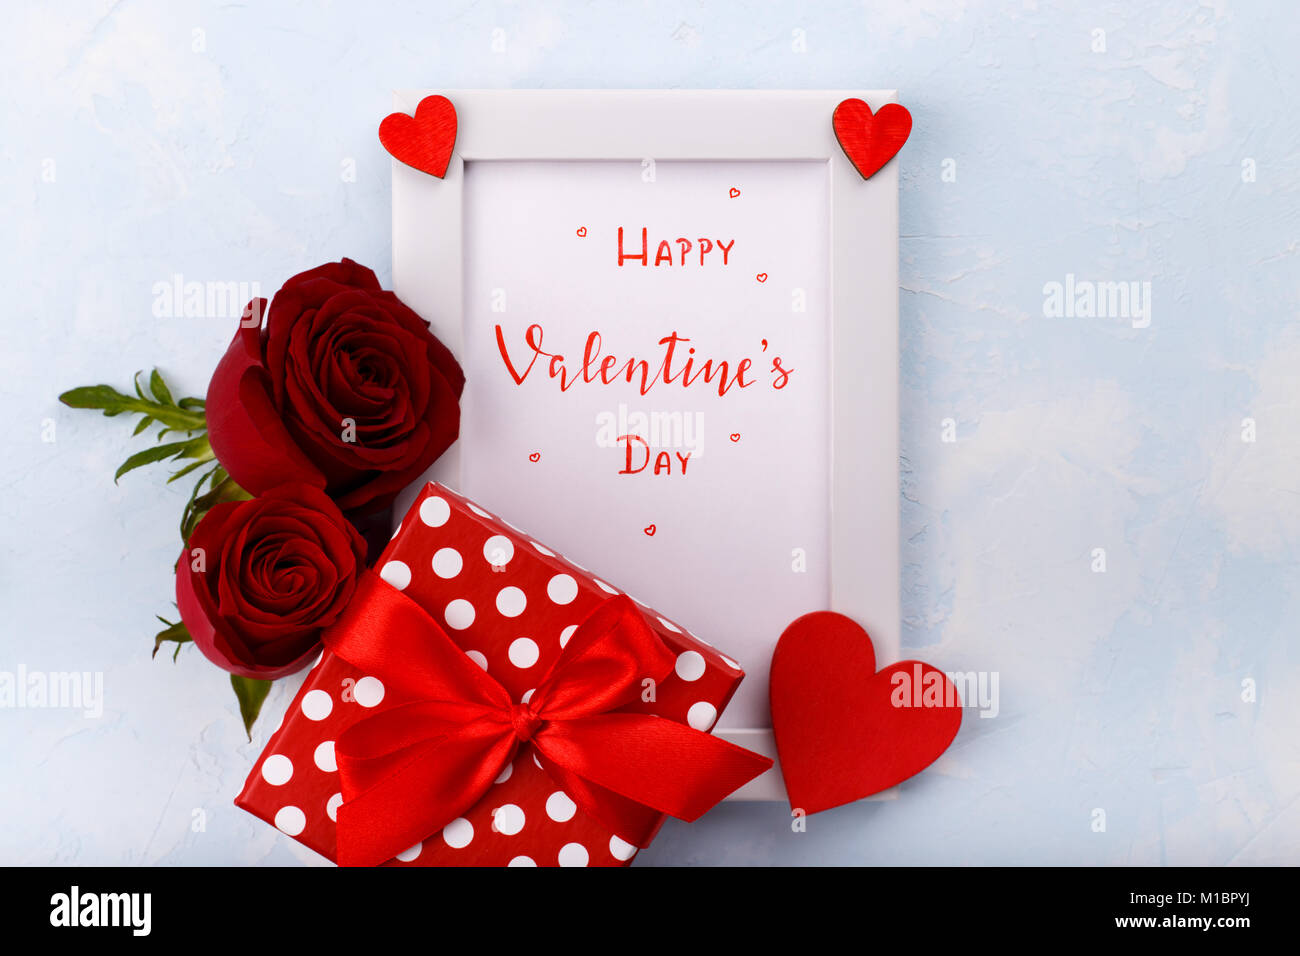 Happy Valentine S Day Wishing In A Frame With Red Hearts Red Roses